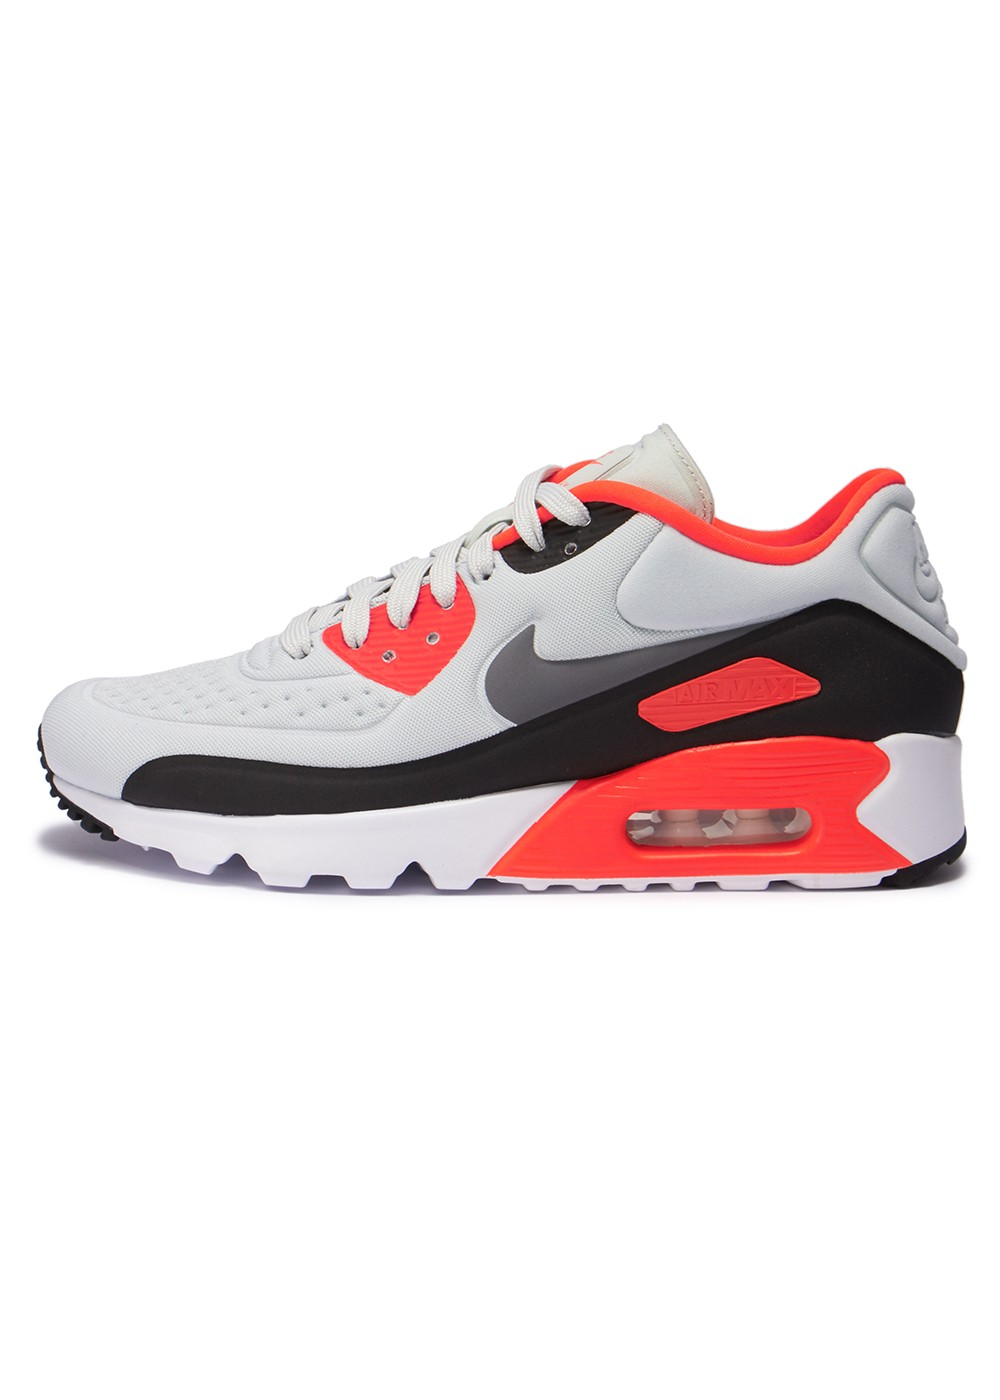 AIR MAX 90 ULTRA SE 845039-006【NIKE】|LtGREY|スニーカー|Styles